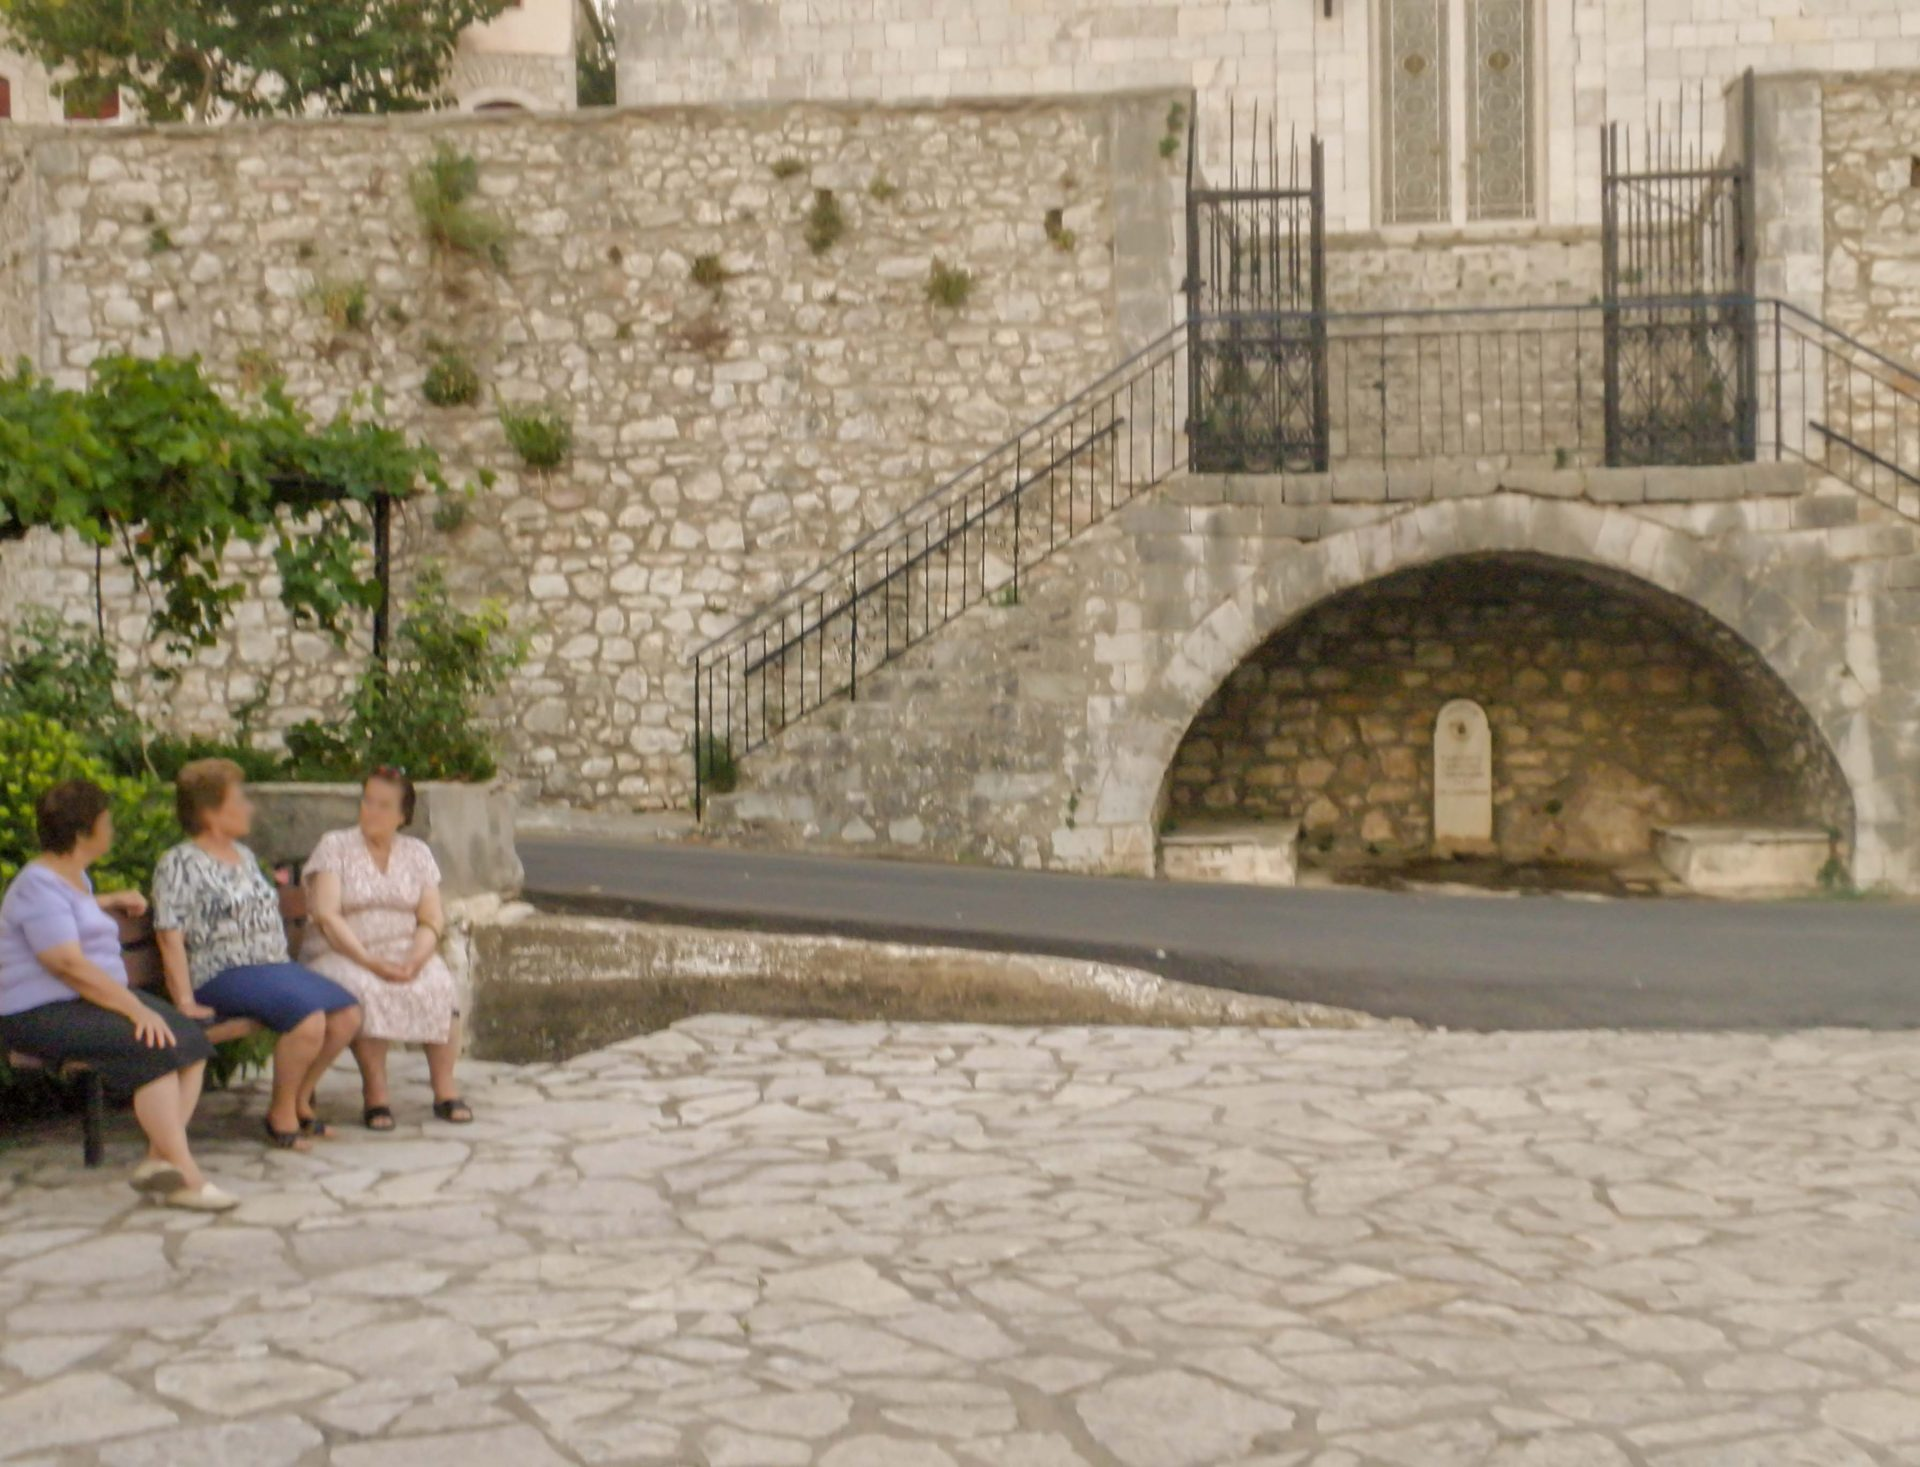 Greek church of Karytaina with local women chatting on a bench.